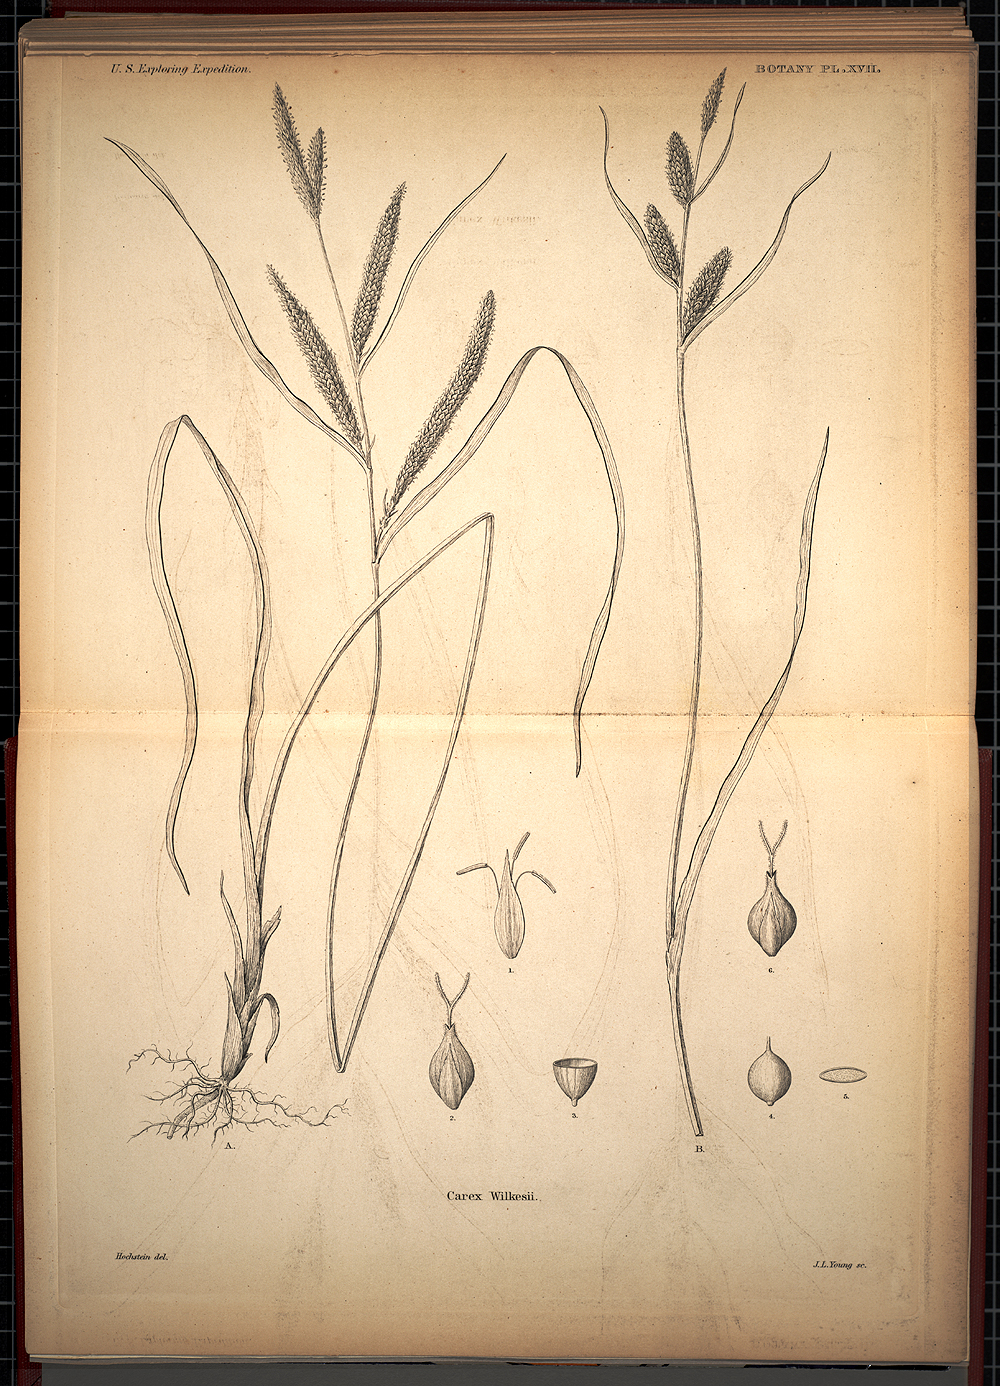 Botany, Plate XVII,  Image number:SIL19-28-057